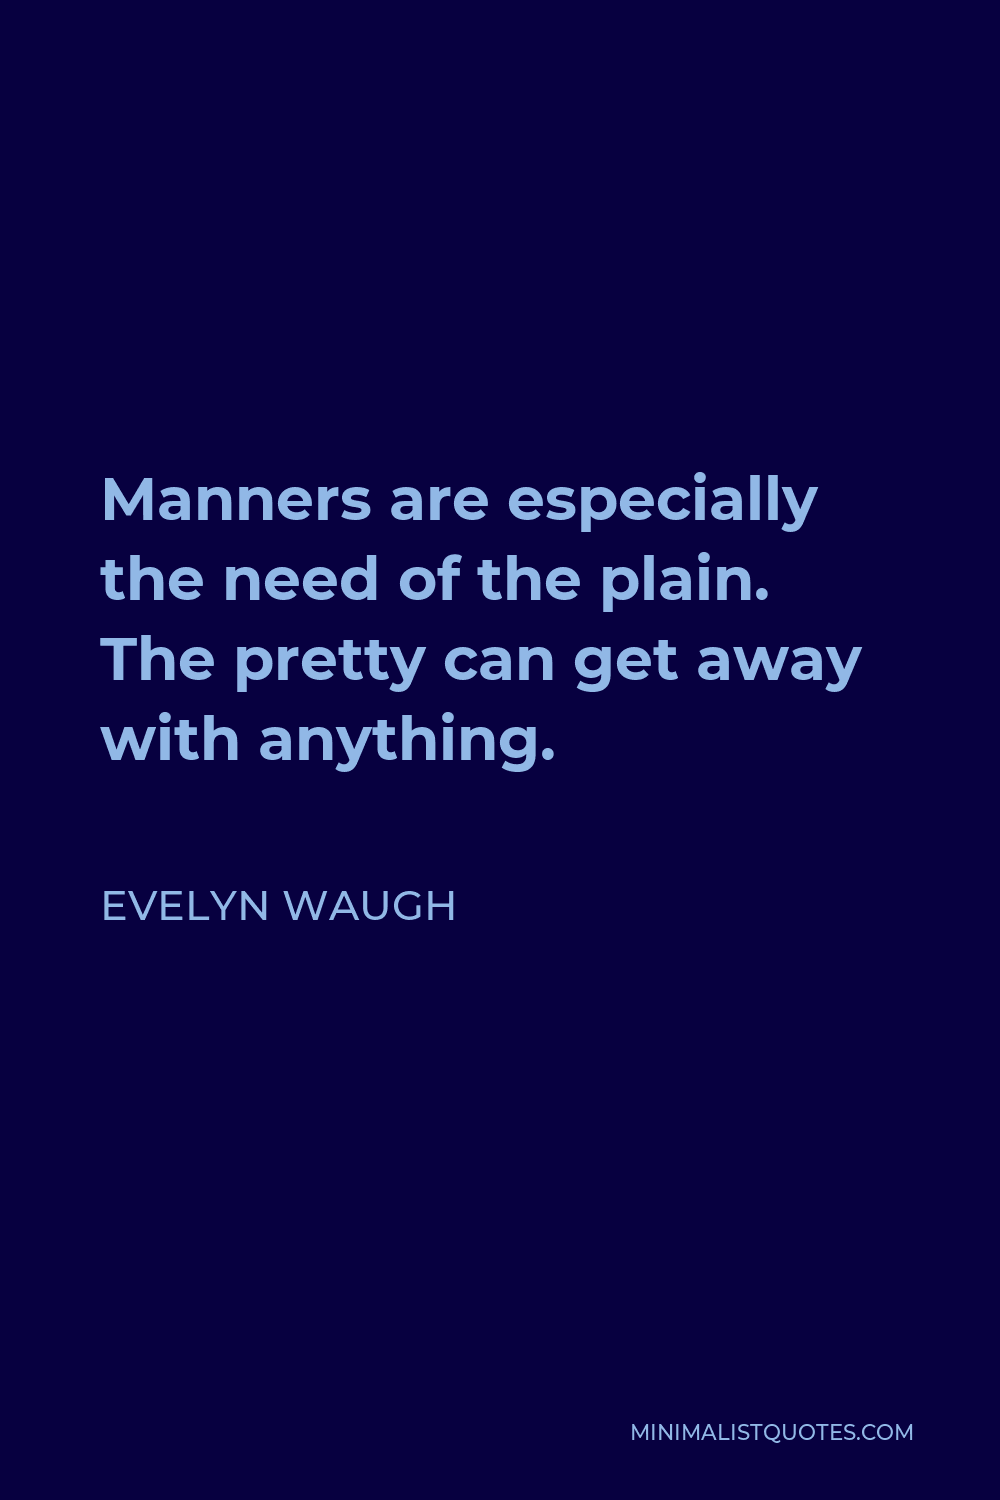 Evelyn Waugh Quote - Manners are especially the need of the plain. The pretty can get away with anything.